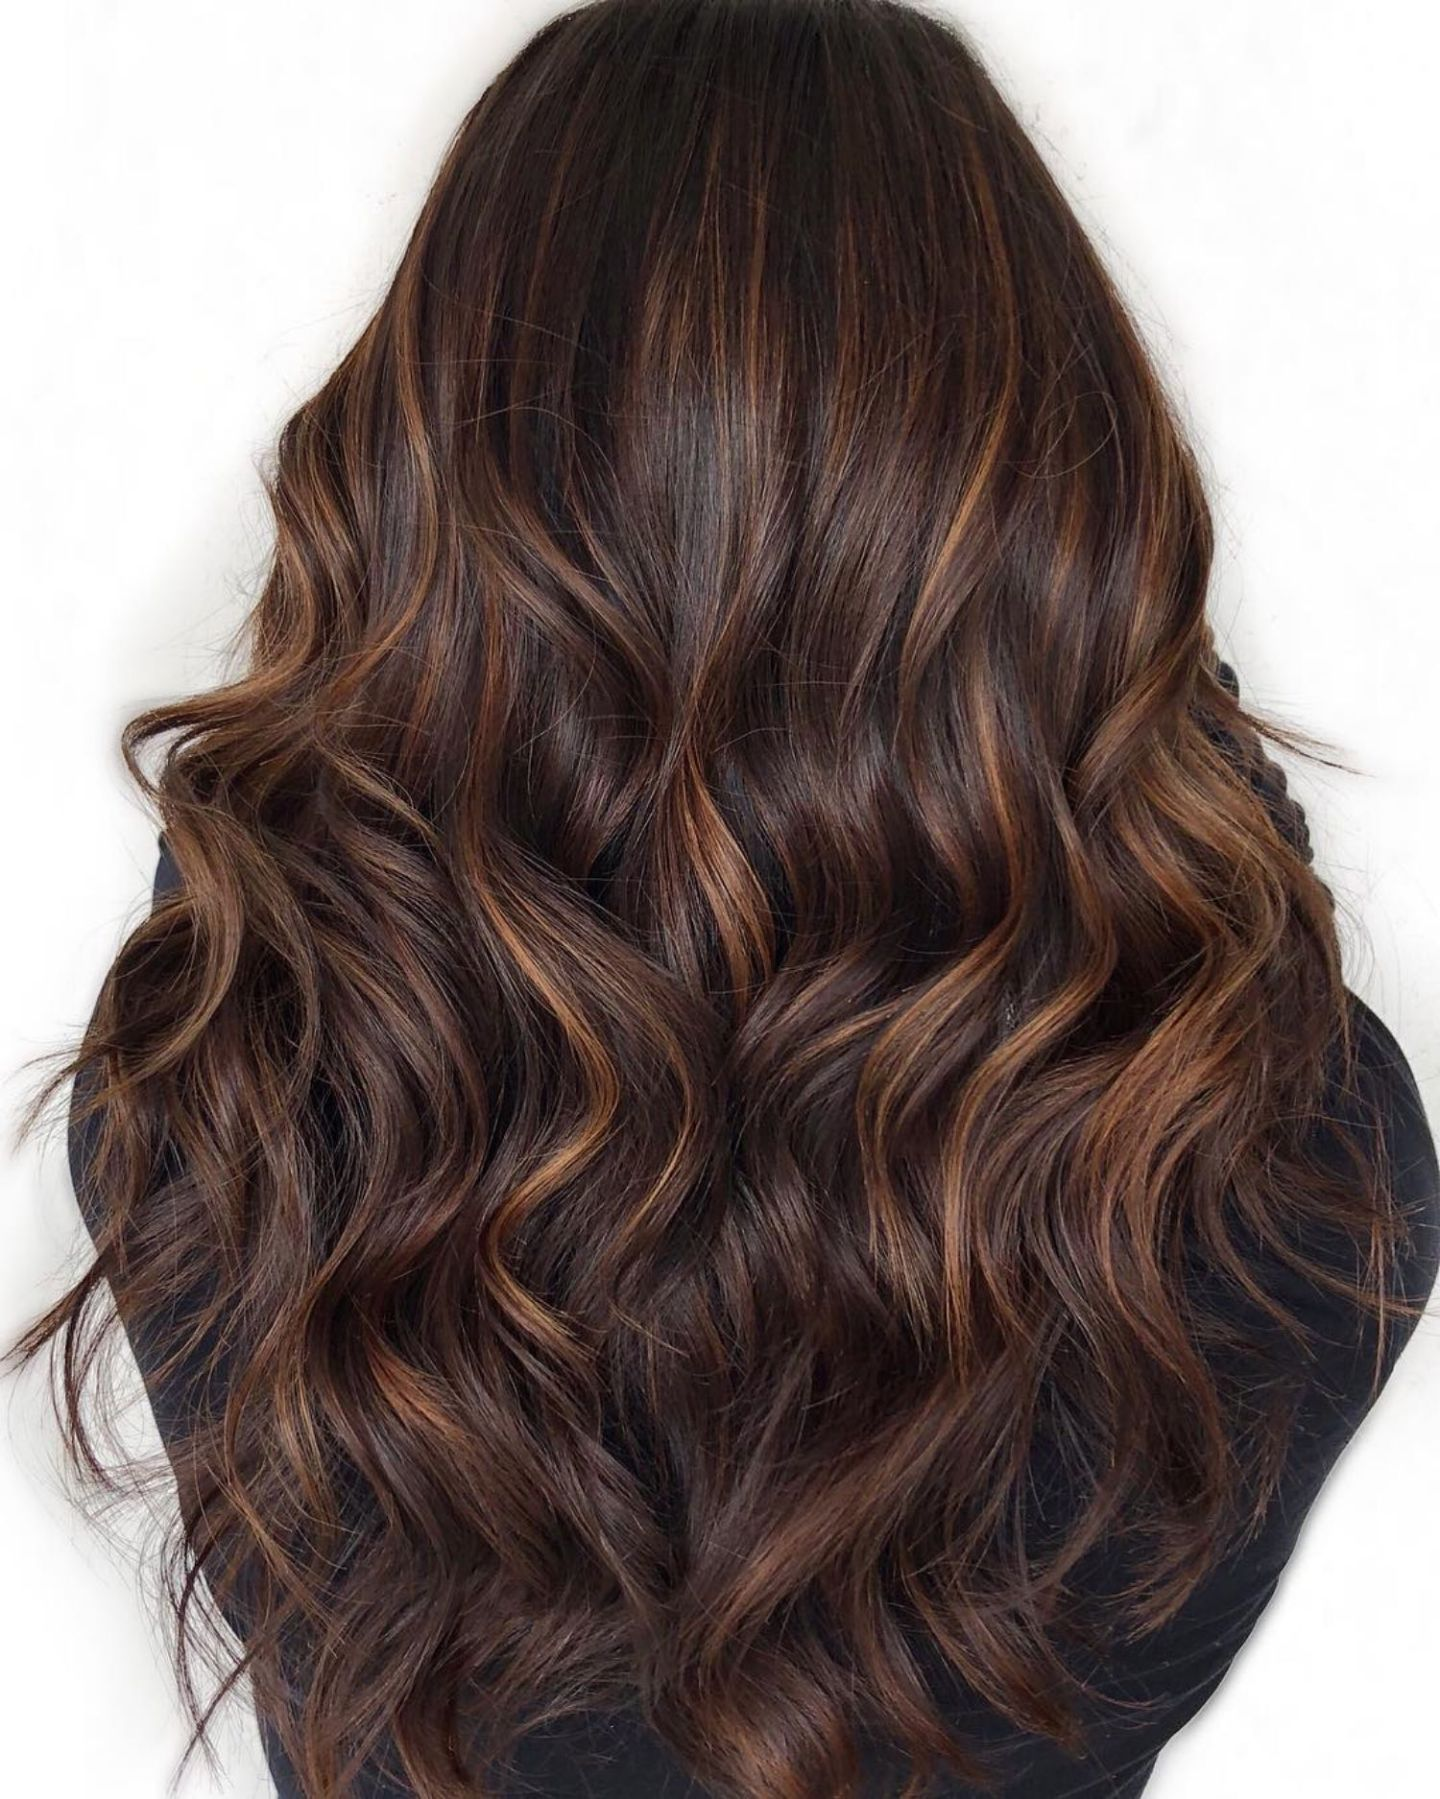 60 Looks With Caramel Highlights On Brown And Dark Brown Hair Dark Hair With Highlights Brown Hair With Highlights Hair Styles